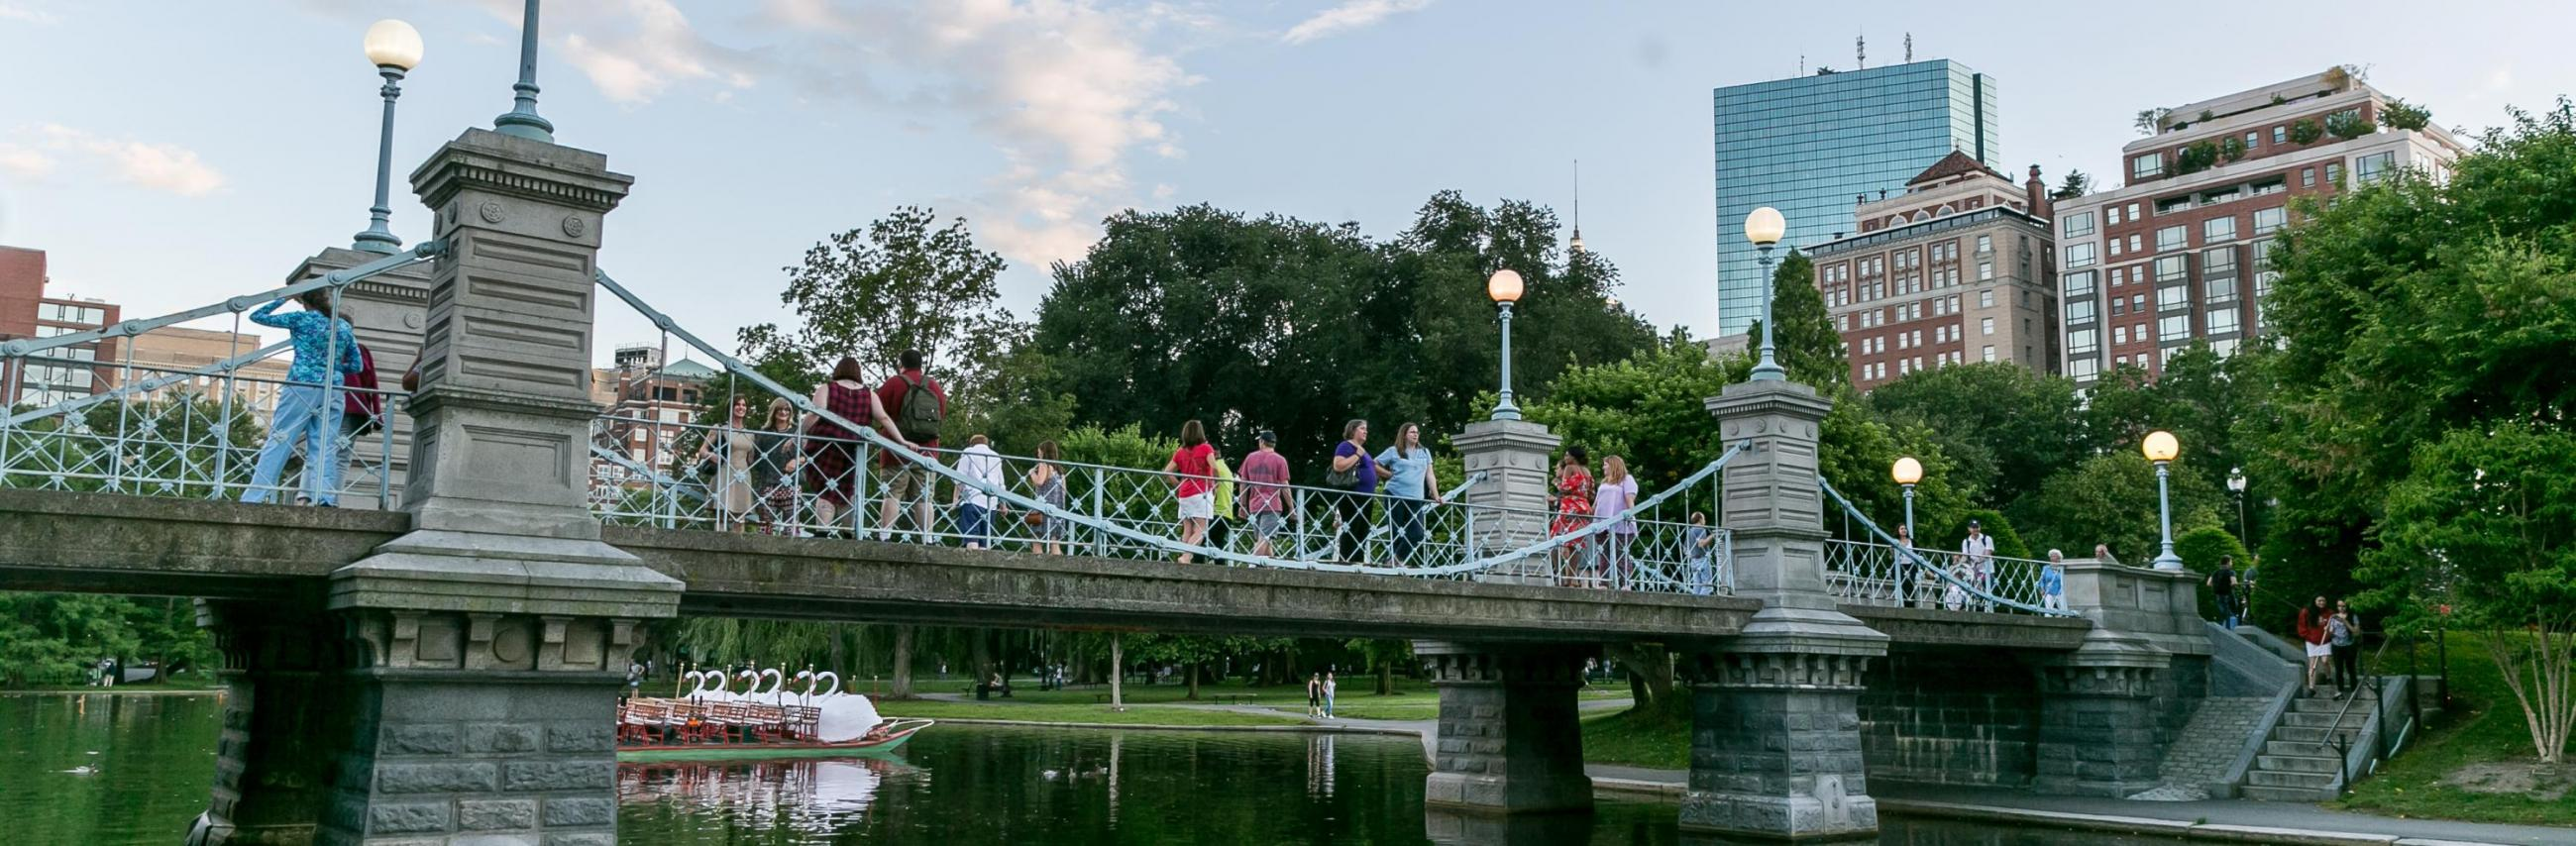 public garden suspension bridge